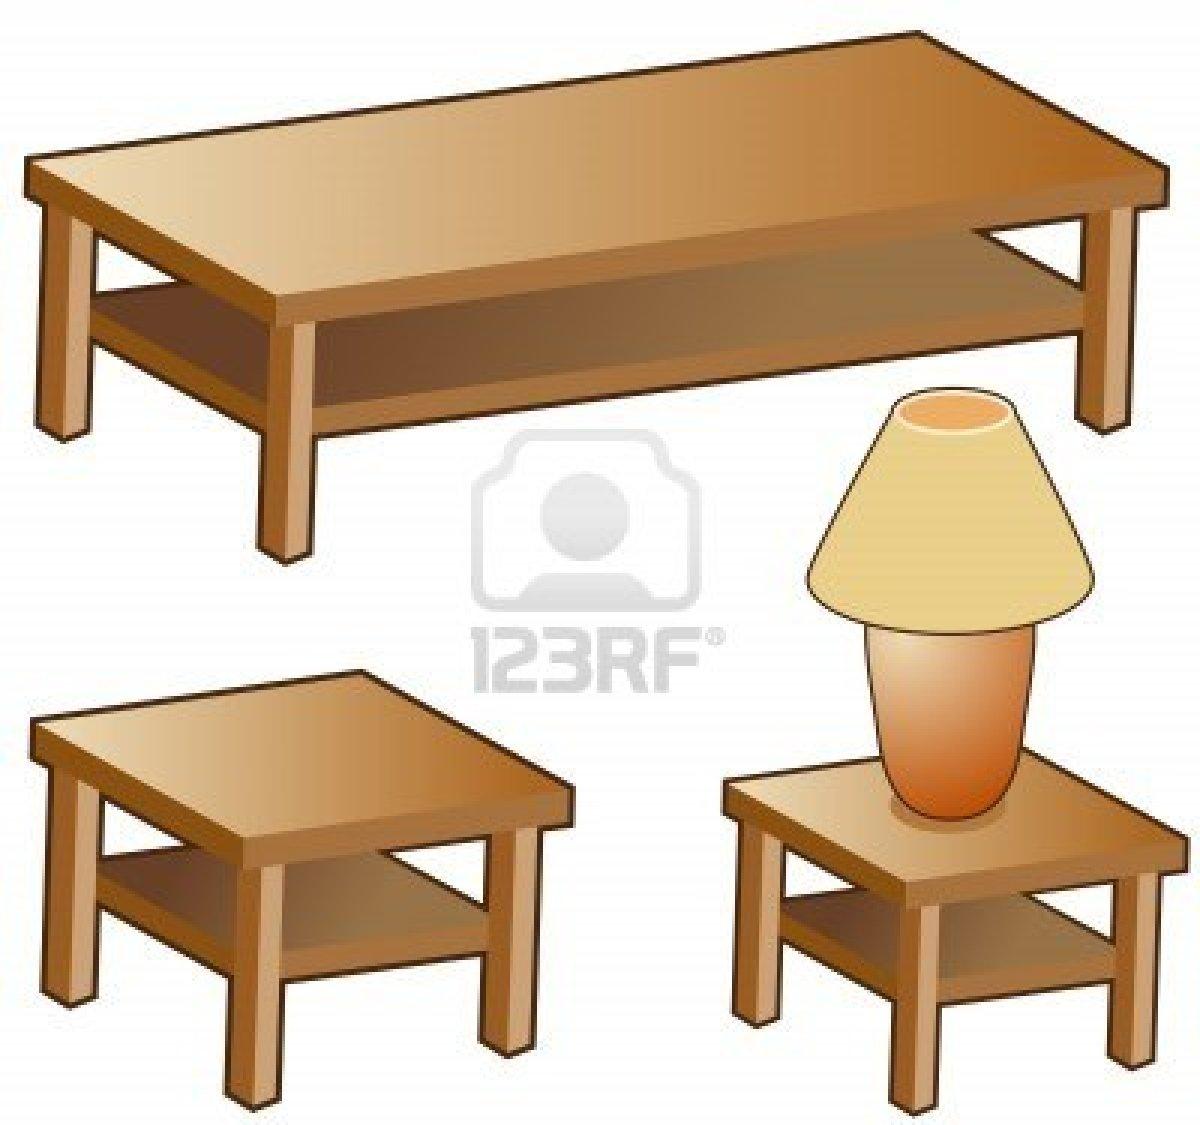 Tables clip art clipart panda free clipart images for Kitchen furniture images